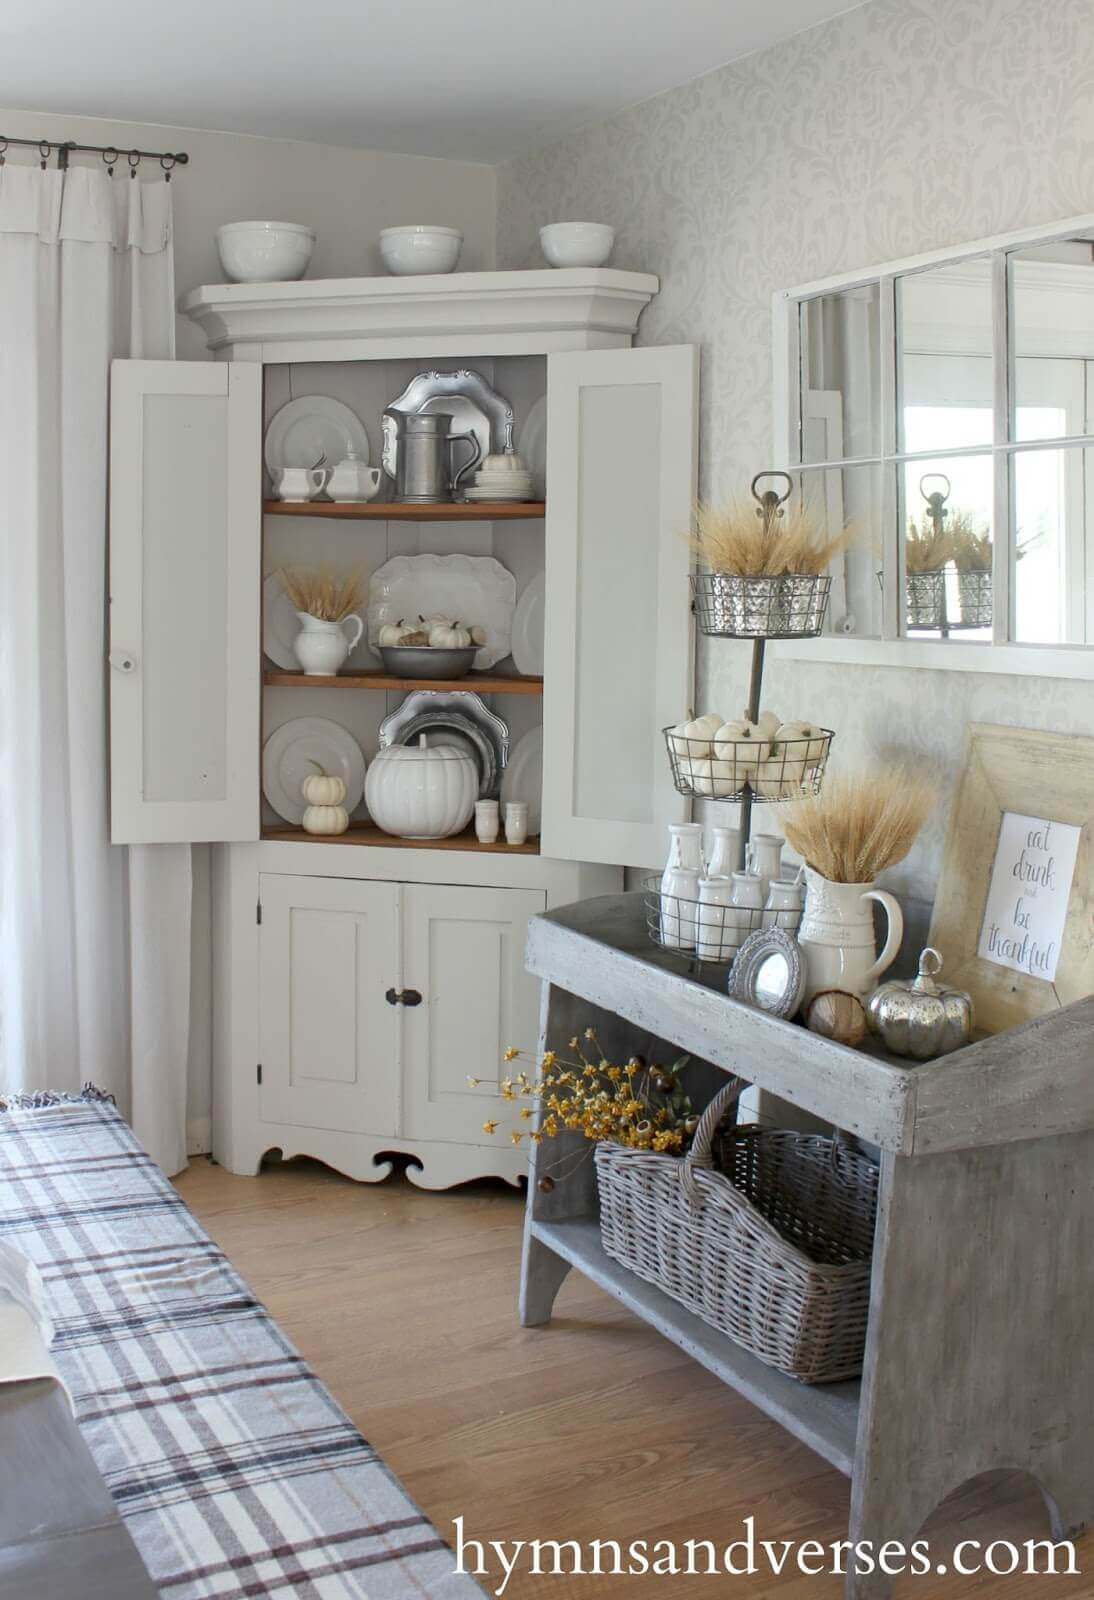 Elegant All White Built-In Corner Cabinet